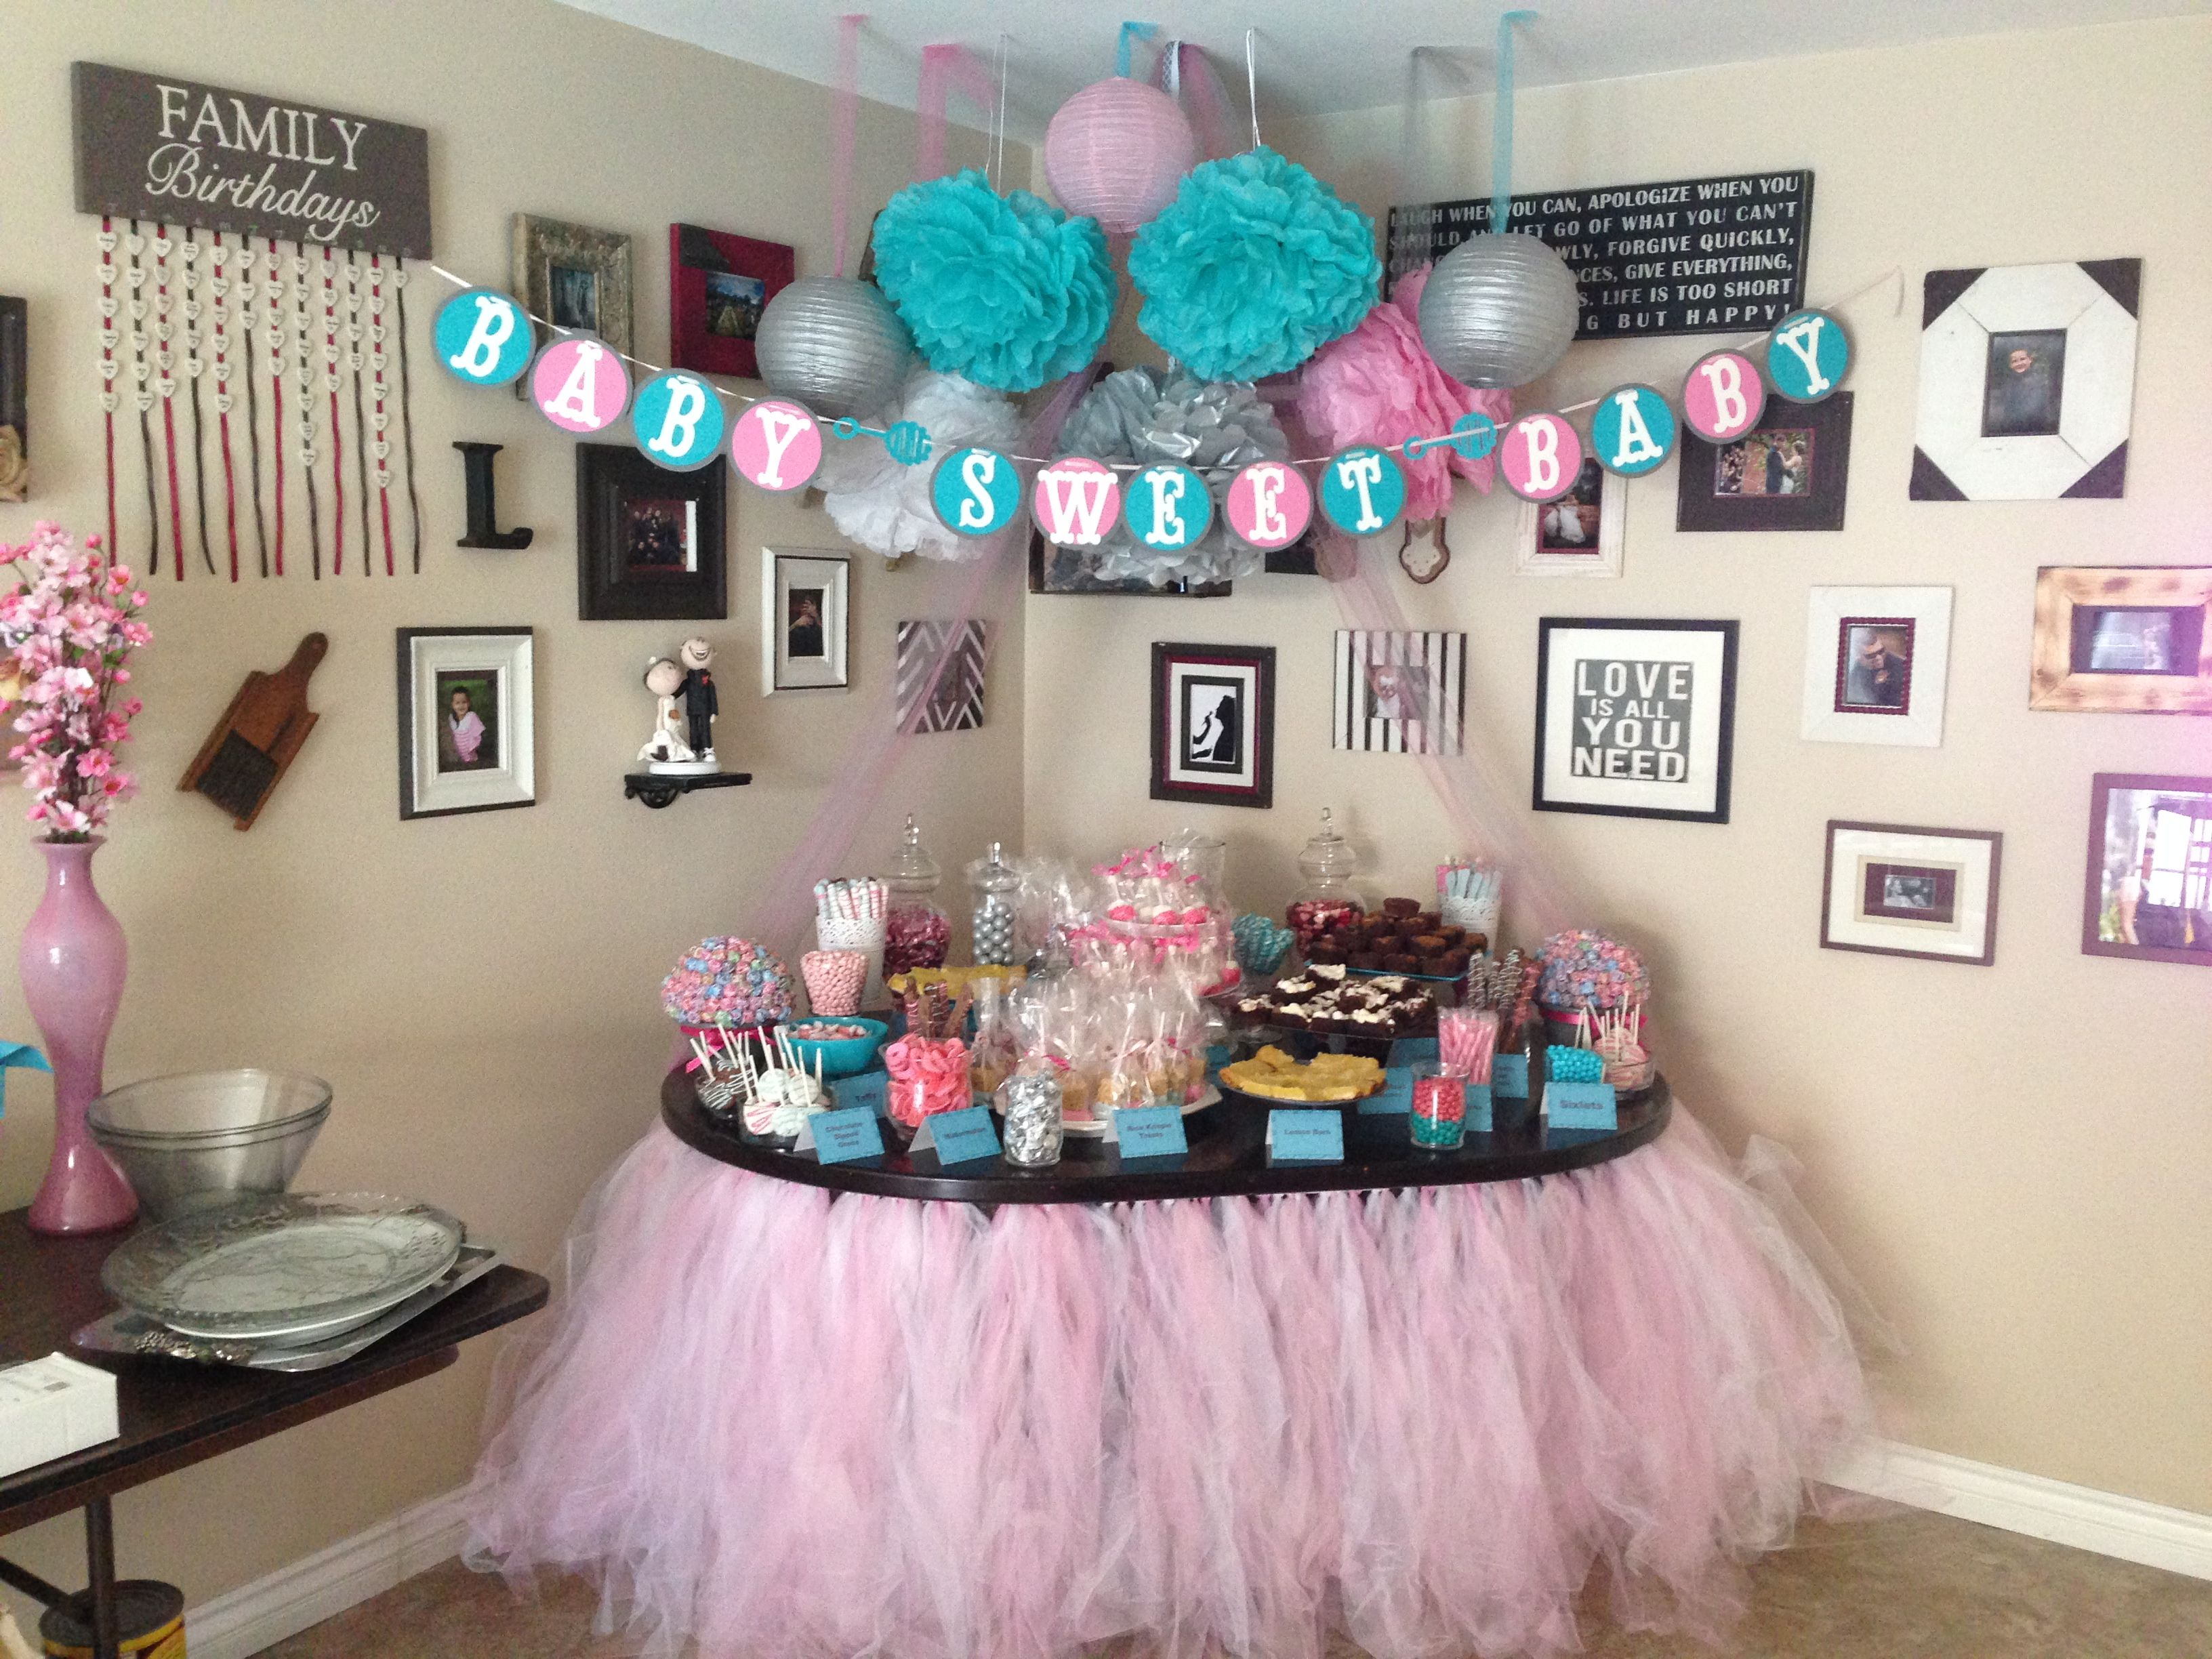 Baby Shower Room Set Up Ideas Dessert table set up Table Set Up, Dessert Table, Sprinkles, Babyshower,  Brooklyn